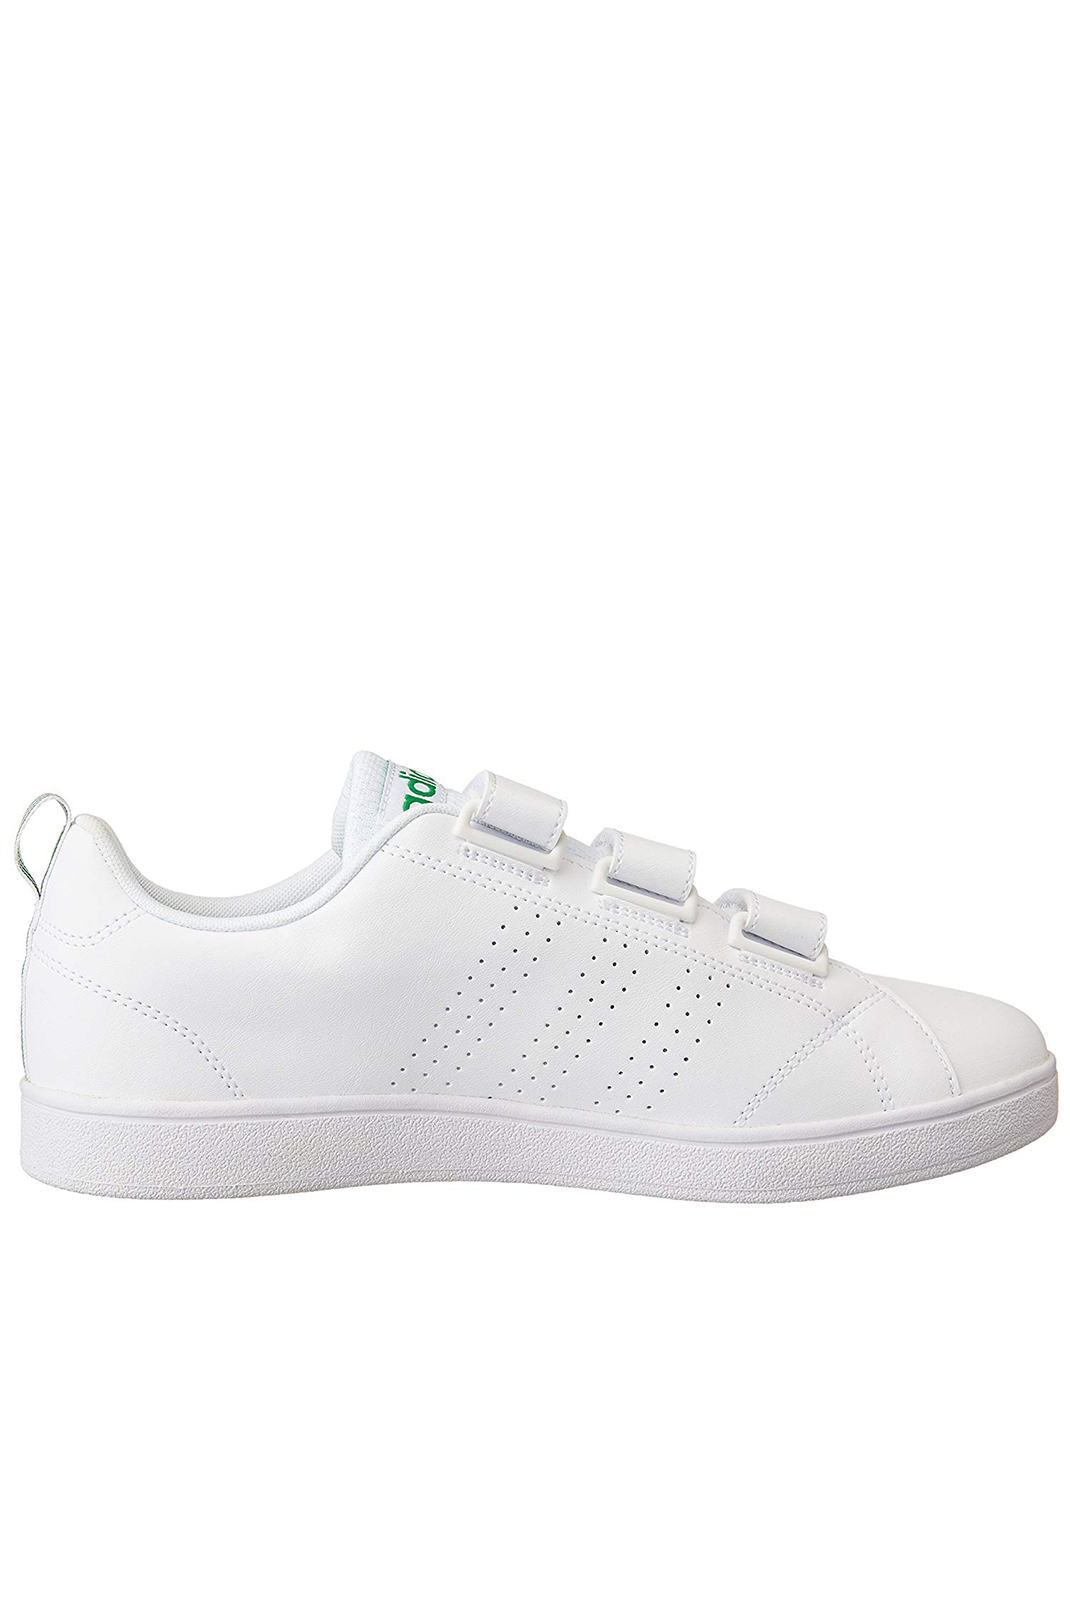 Chaussures   Adidas AW5210 ADVANTAGE CLEAN CMF BLANC